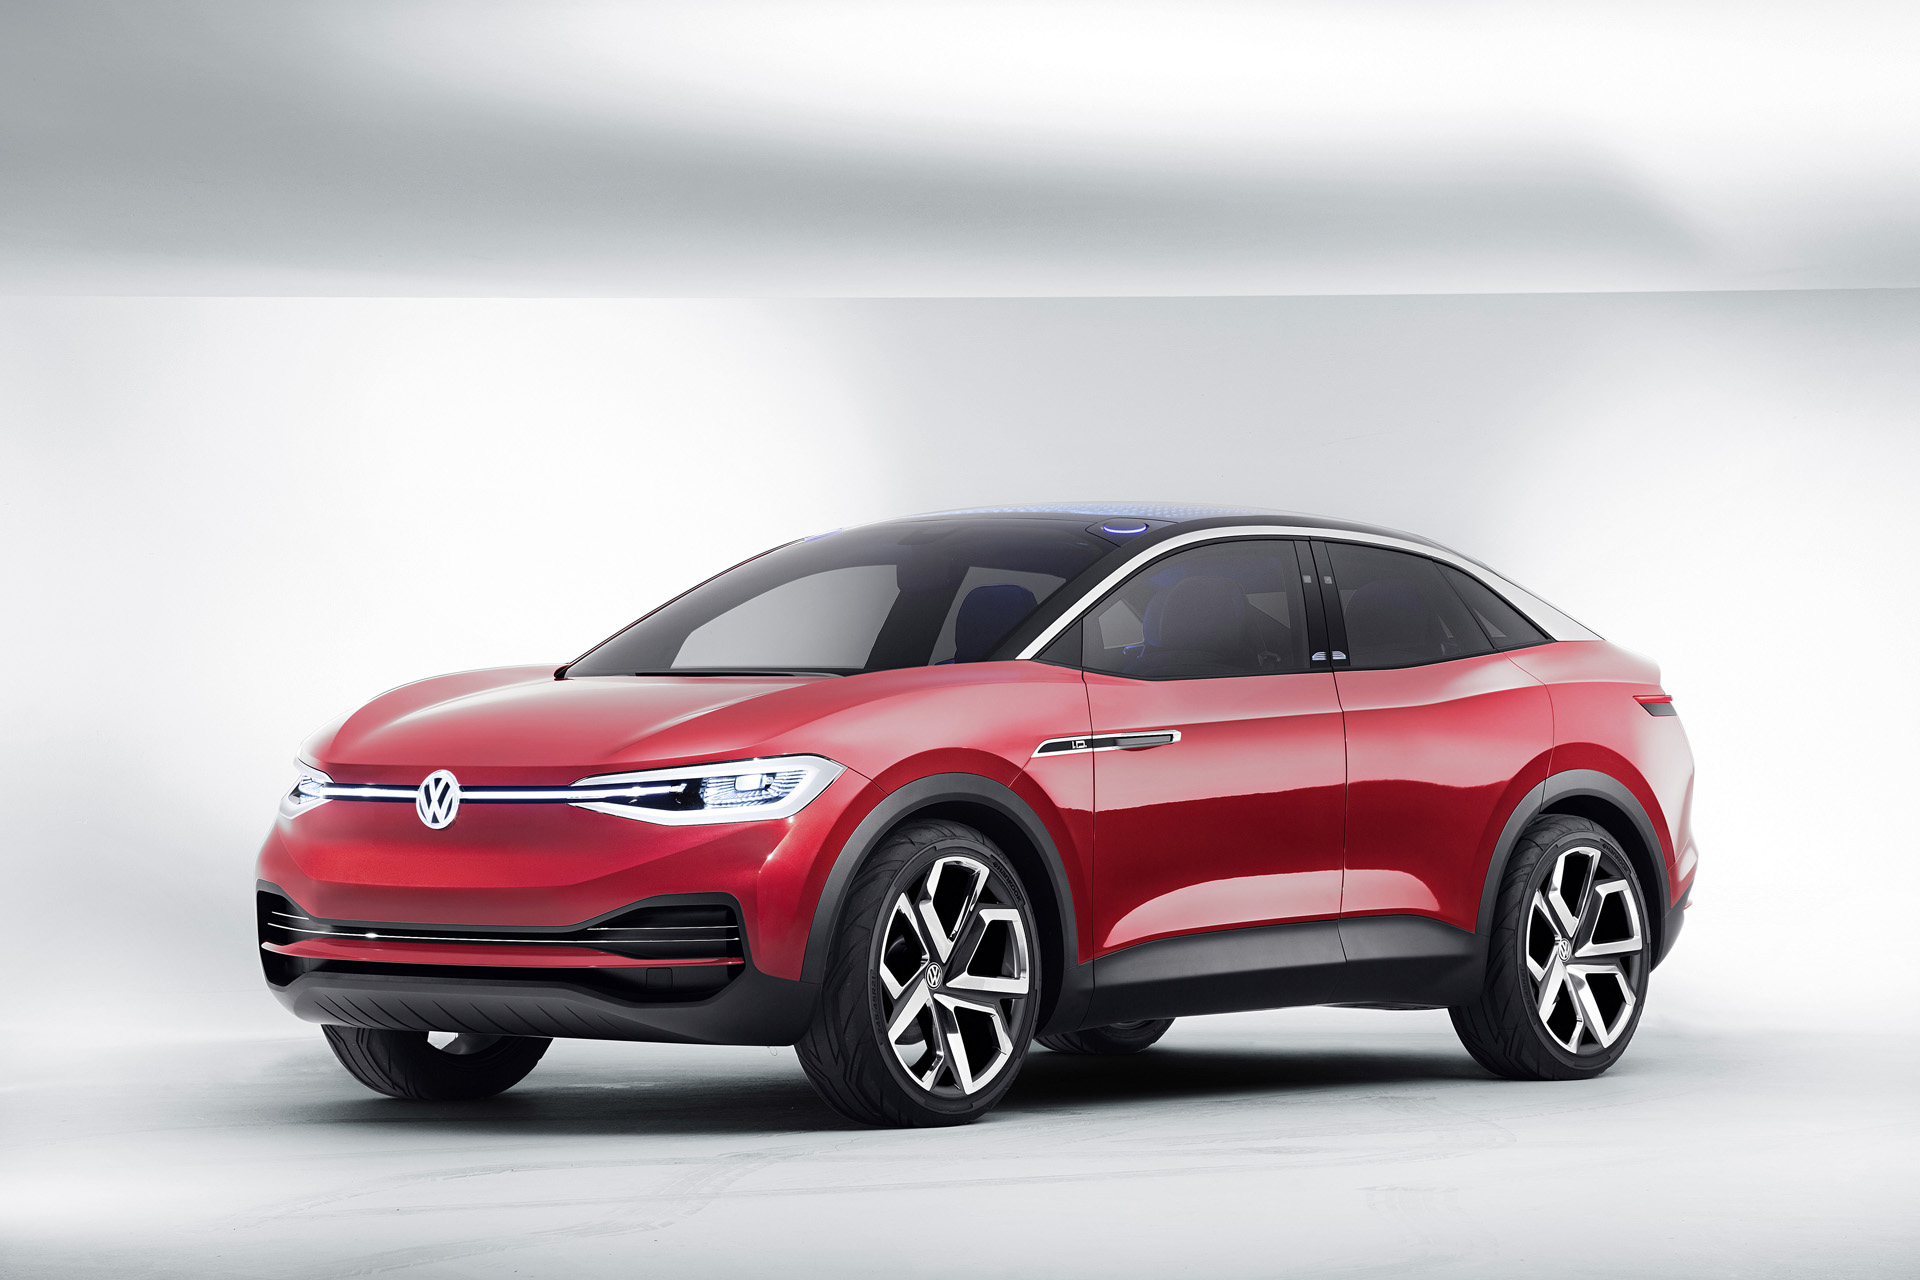 VW ID Crozz Electric Crossover SUV: Design, Release >> Volkswagen Id Crozz Electric Suv To Launch In Us In 2020